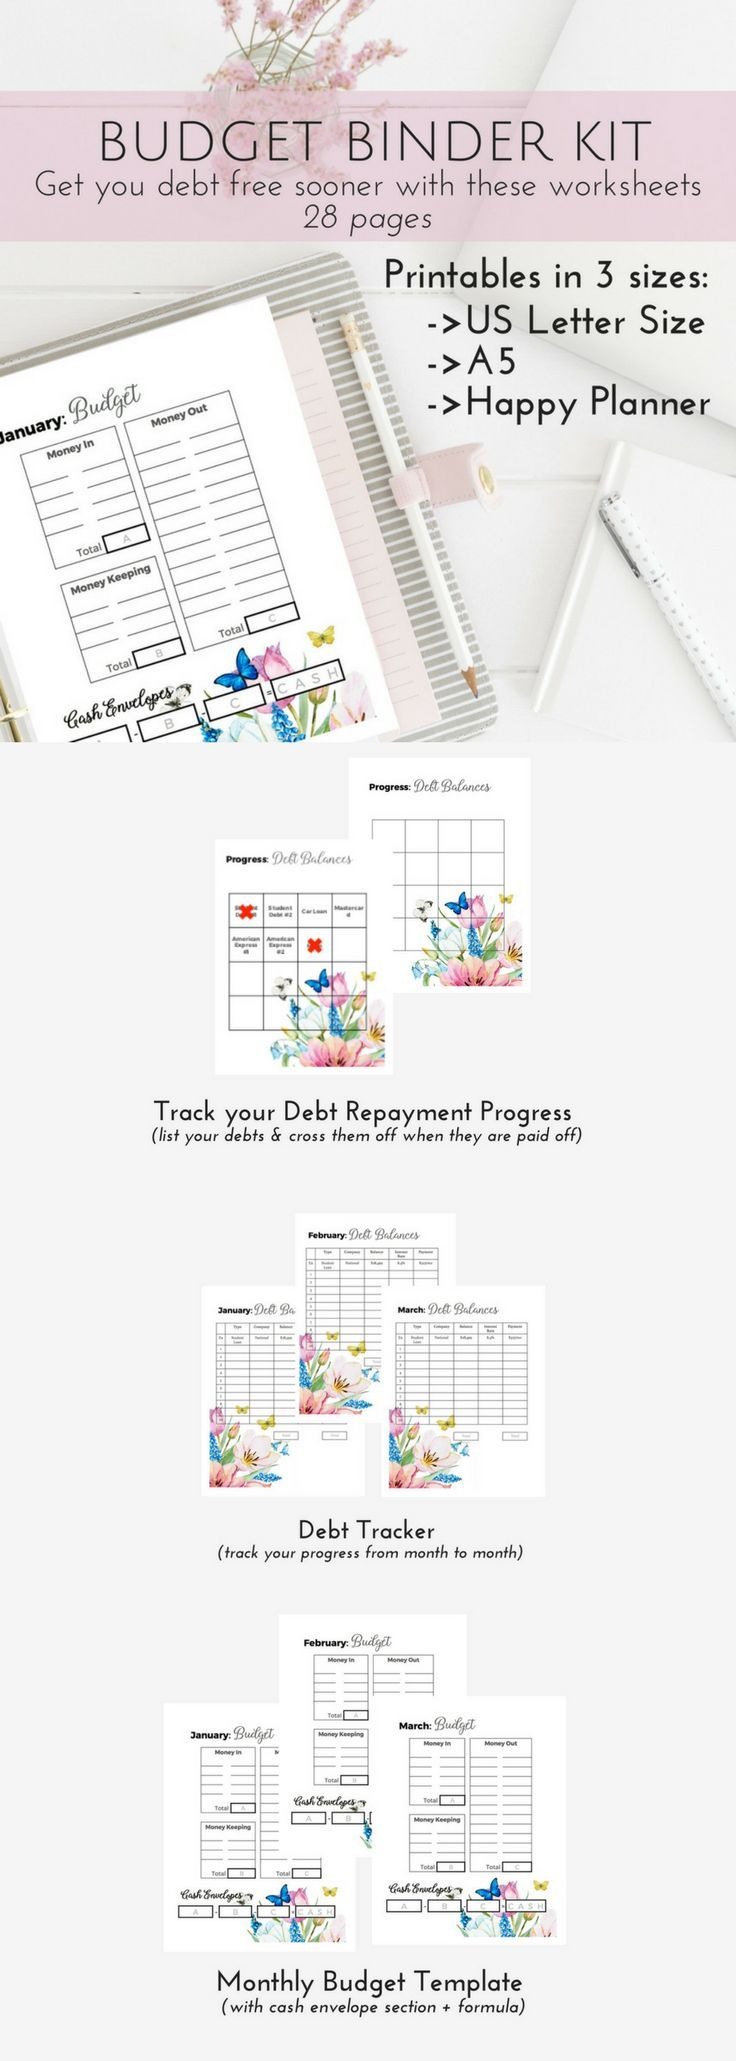 If you are following Dave Ramsey's Baby Steps, this printable debt planner has great printable monthly budget templates to track your debt snowball as well as implement the cash envelope system! Get started on the right track with these beautifully design